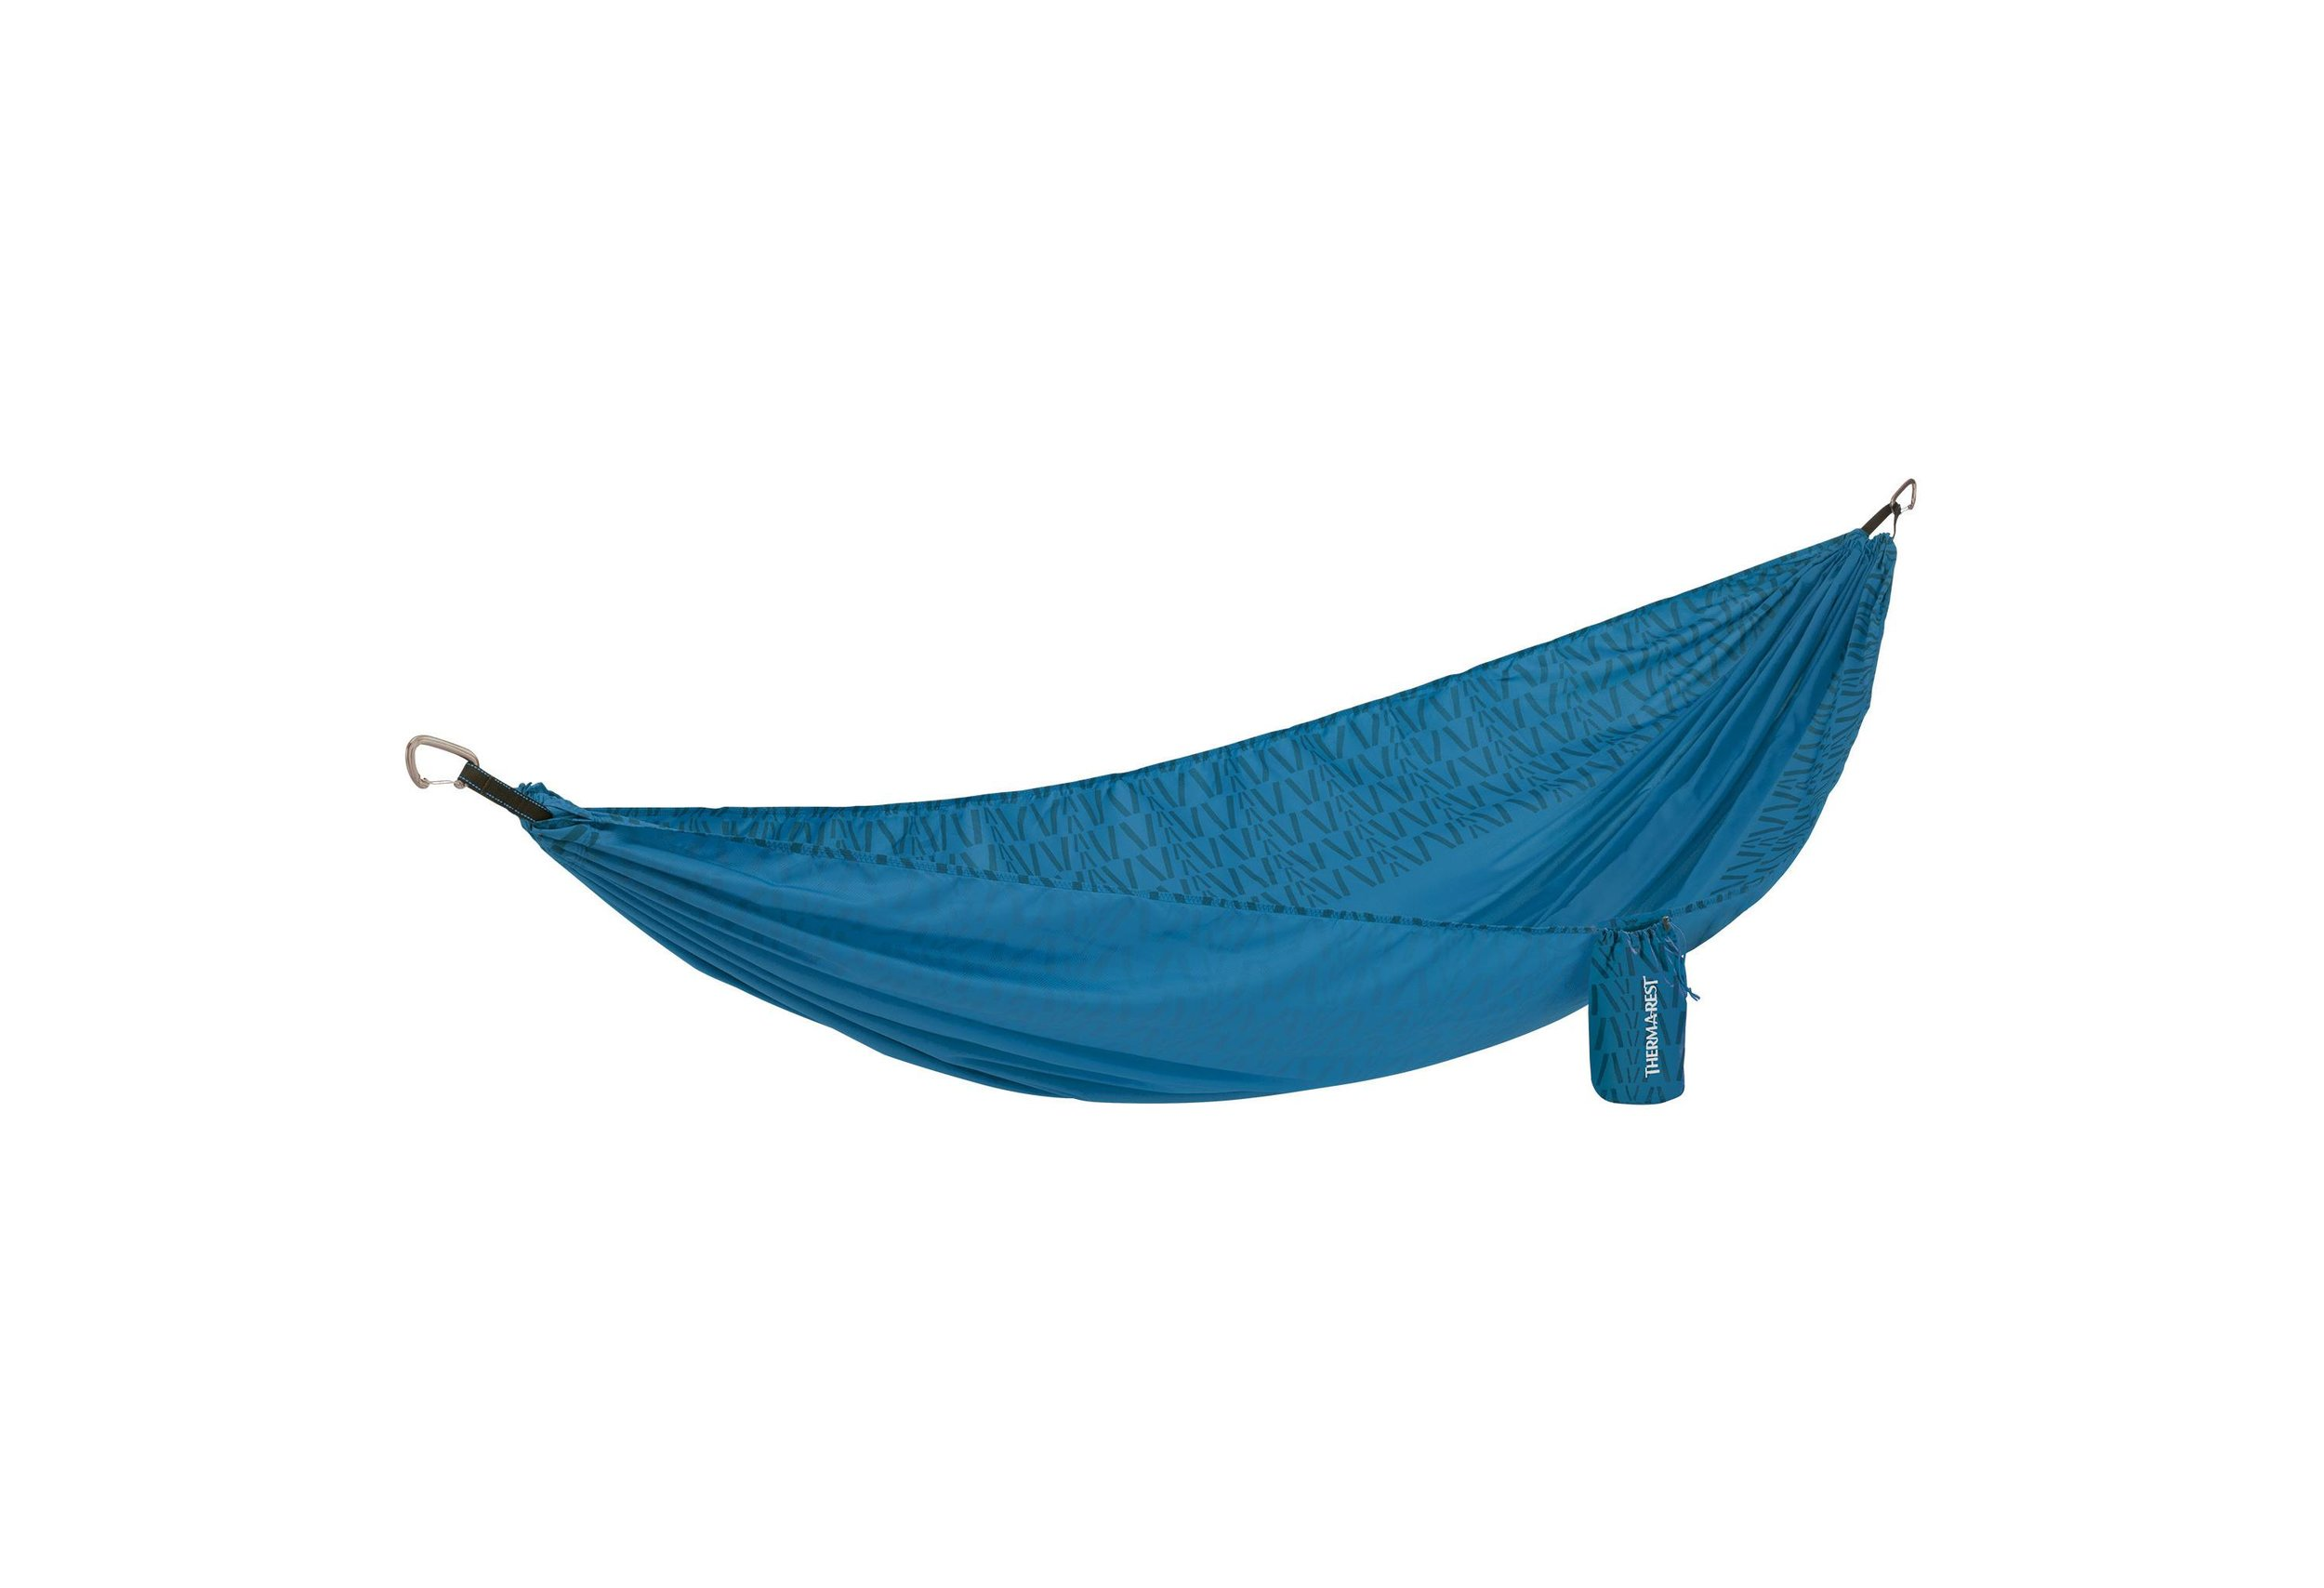 HAMMOCK... - because he loves the outdoors and needs a good place to lounge